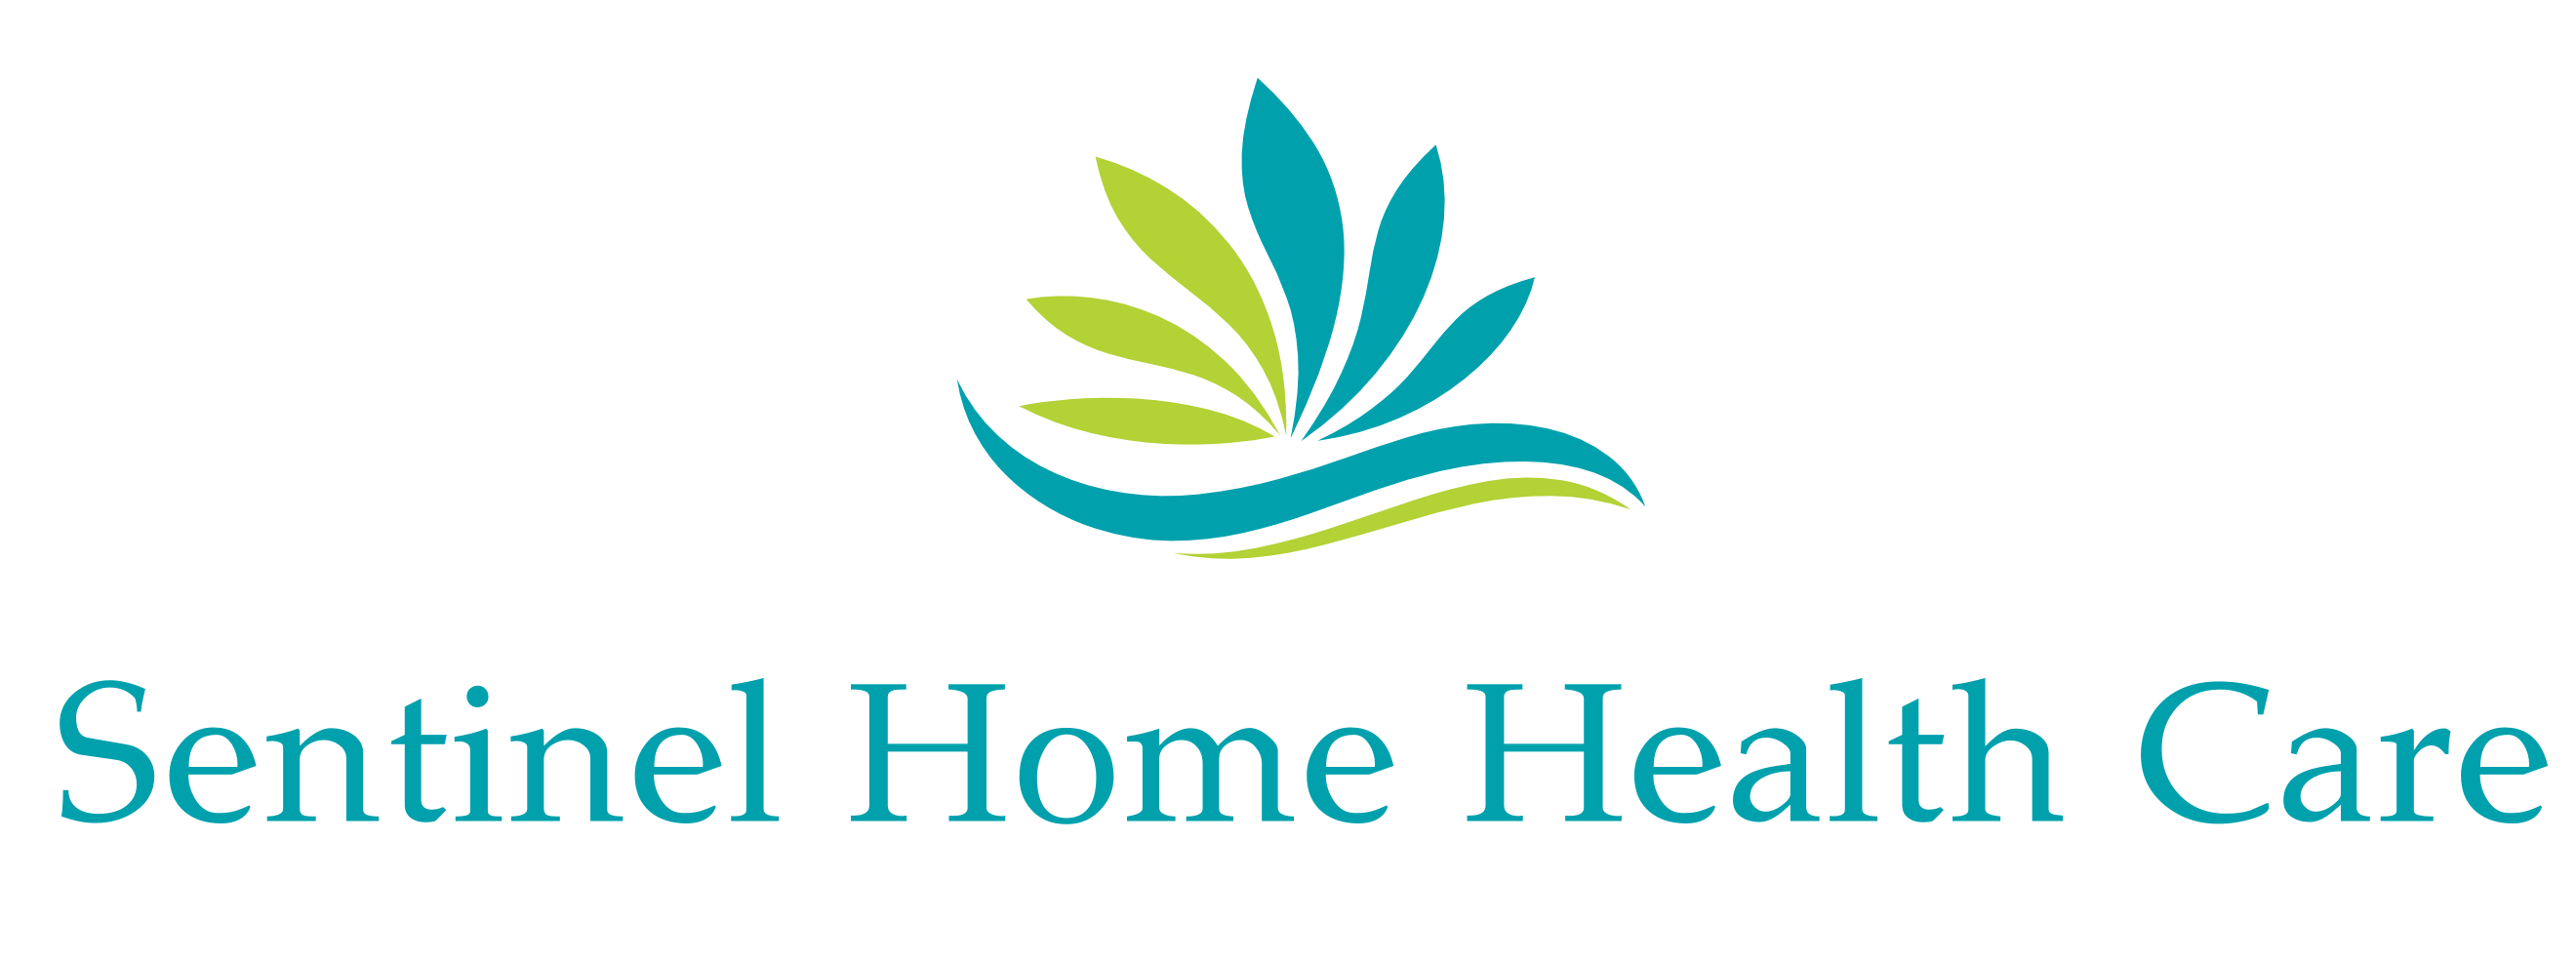 Sentinel Home Health Care